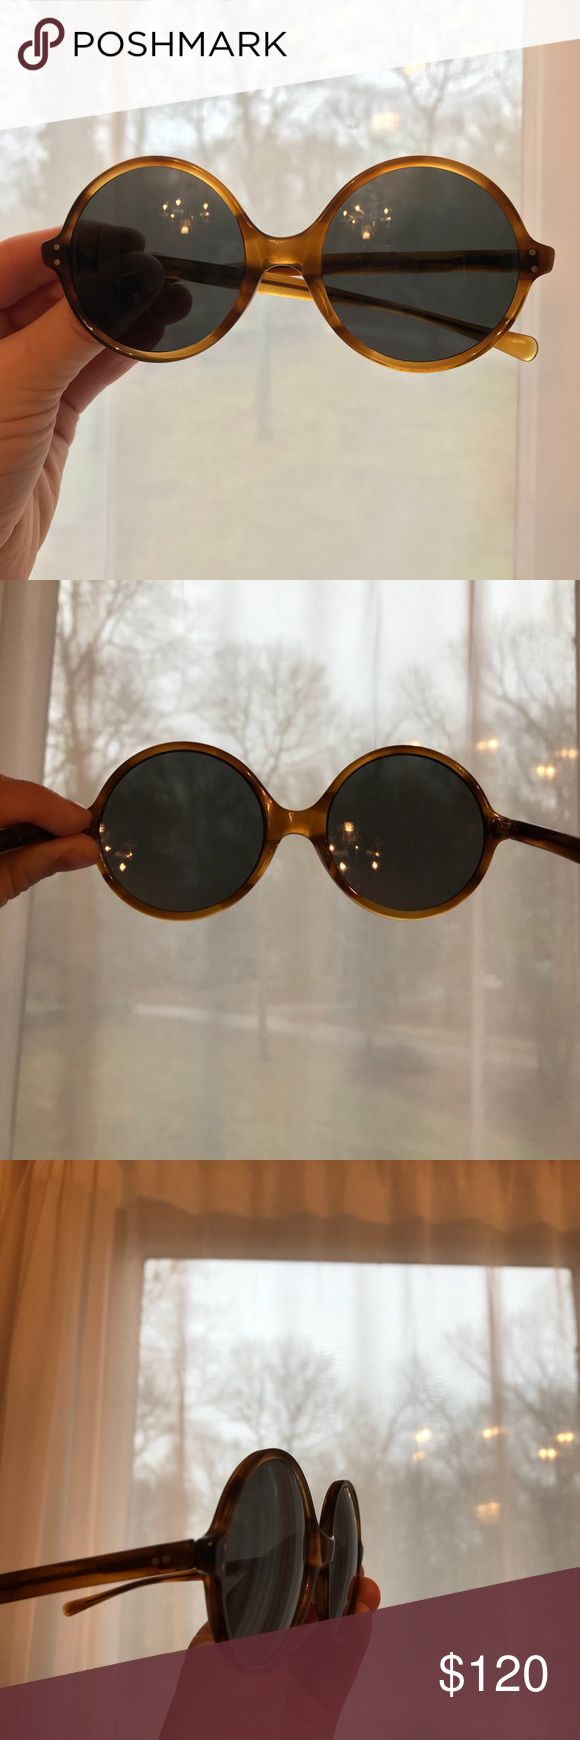 1960s Vintage American Optical sunglasses AO vintage Sunswept true color CN 128 T  Glass lenses in very good condition-no scratches.  Tortoise coloring-round shape American Optical Accessories Sunglasses